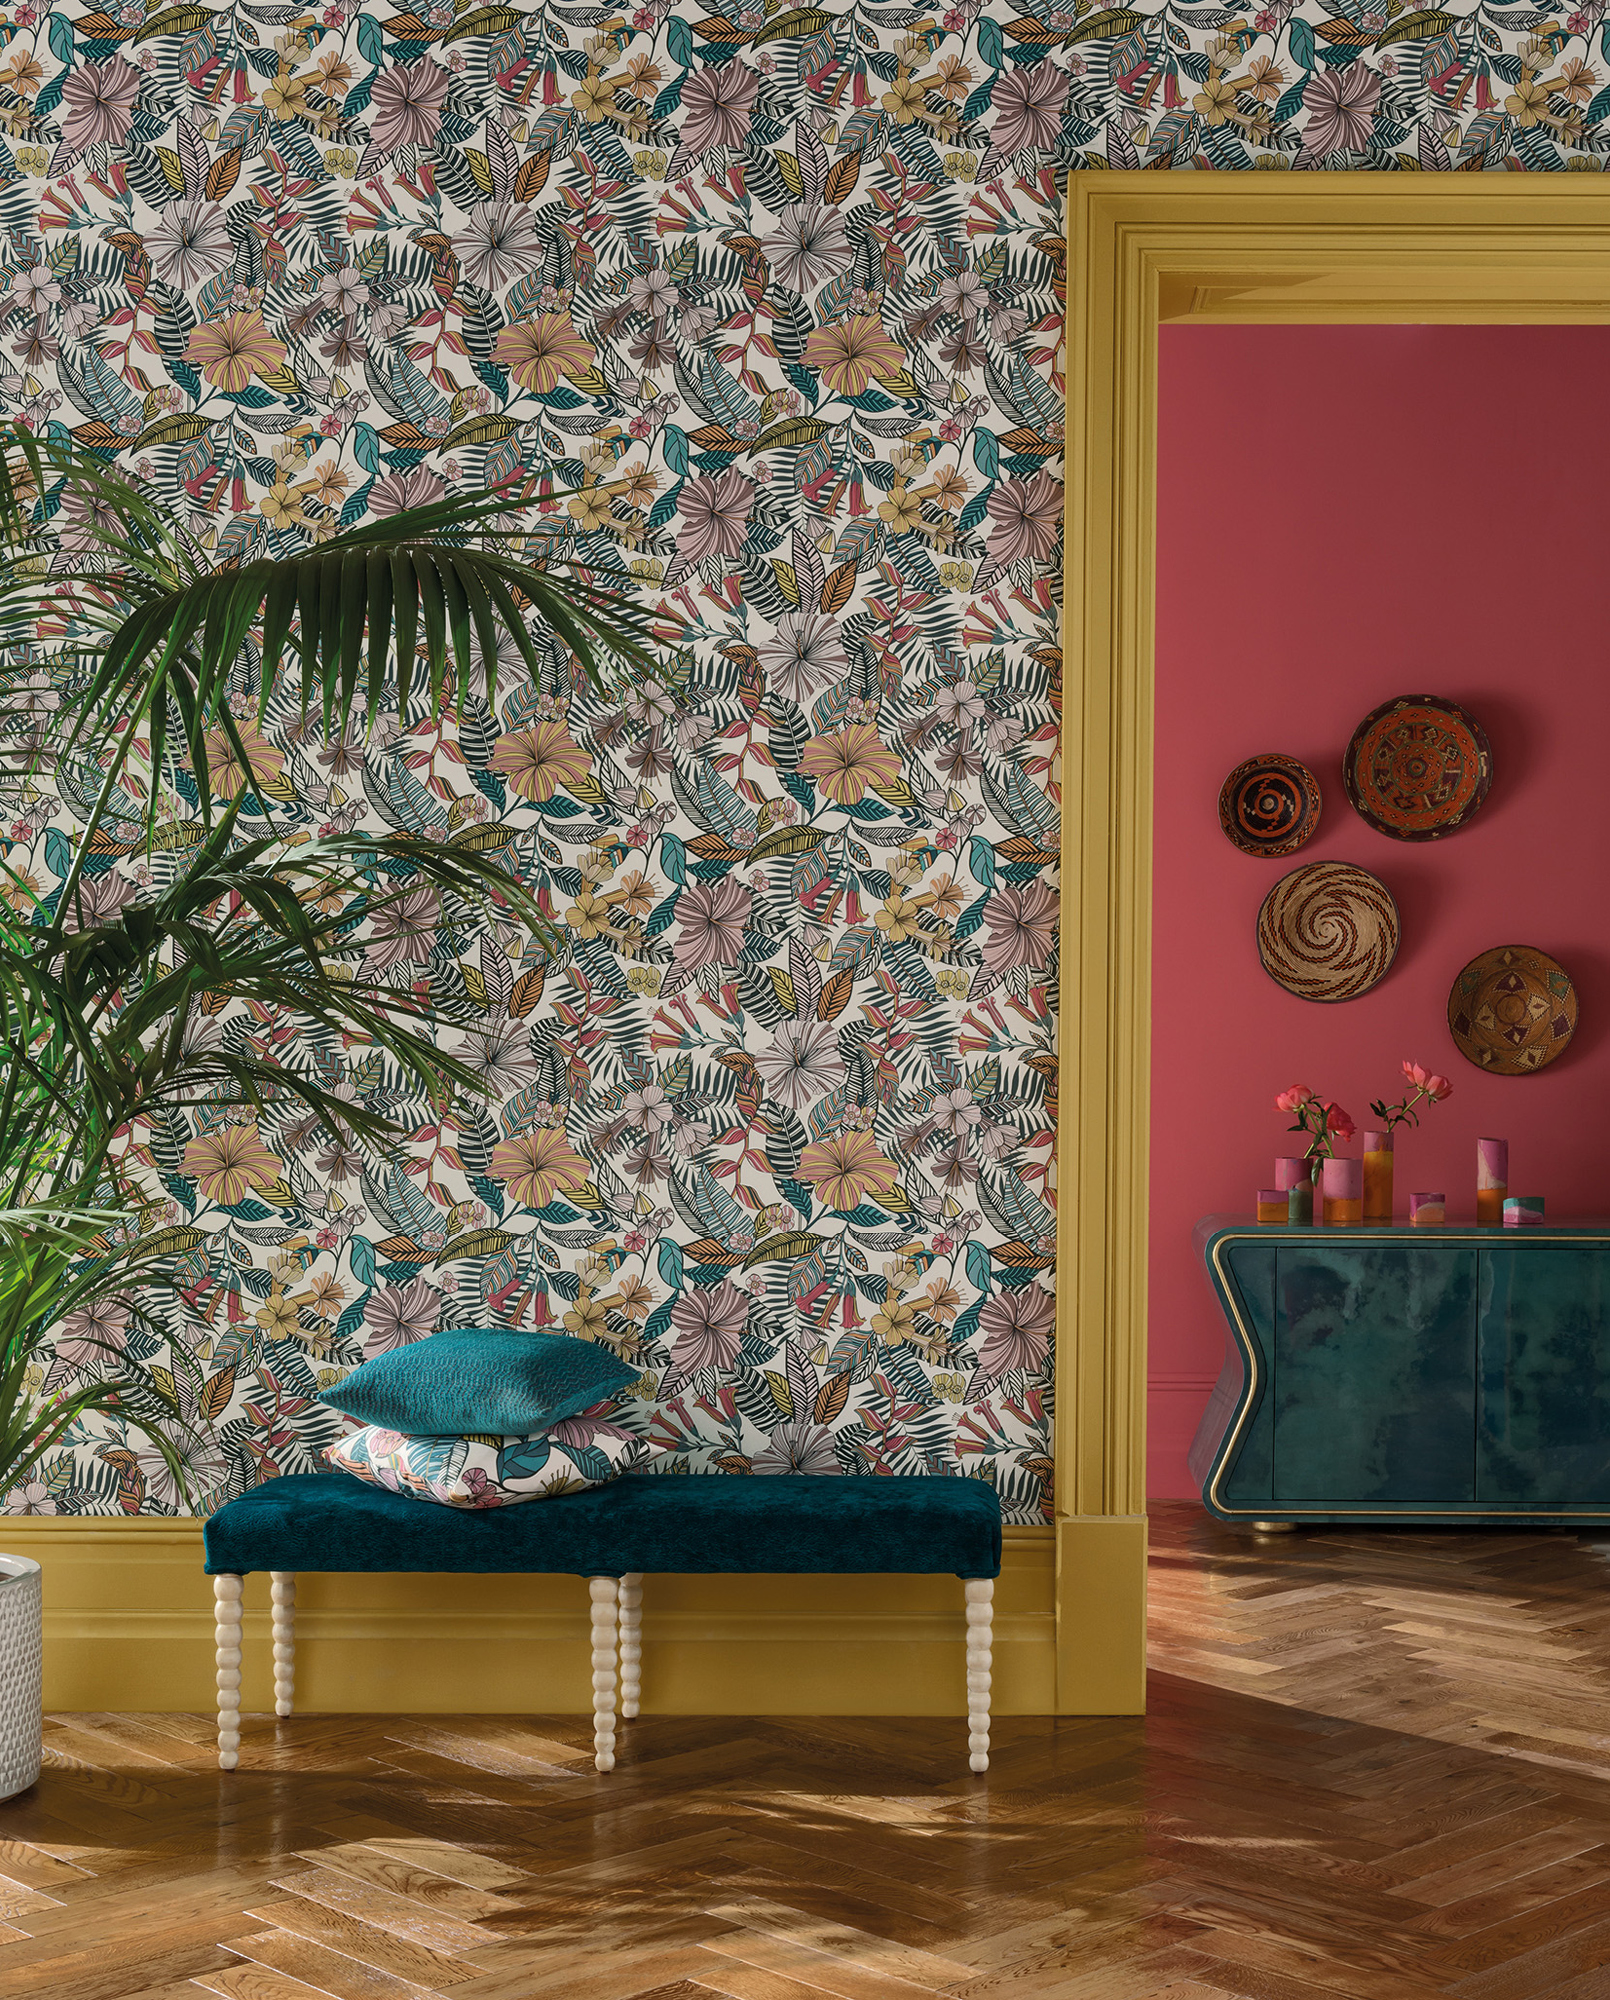 The Deya collection for Osborne & Little features wallpaper and fabrics